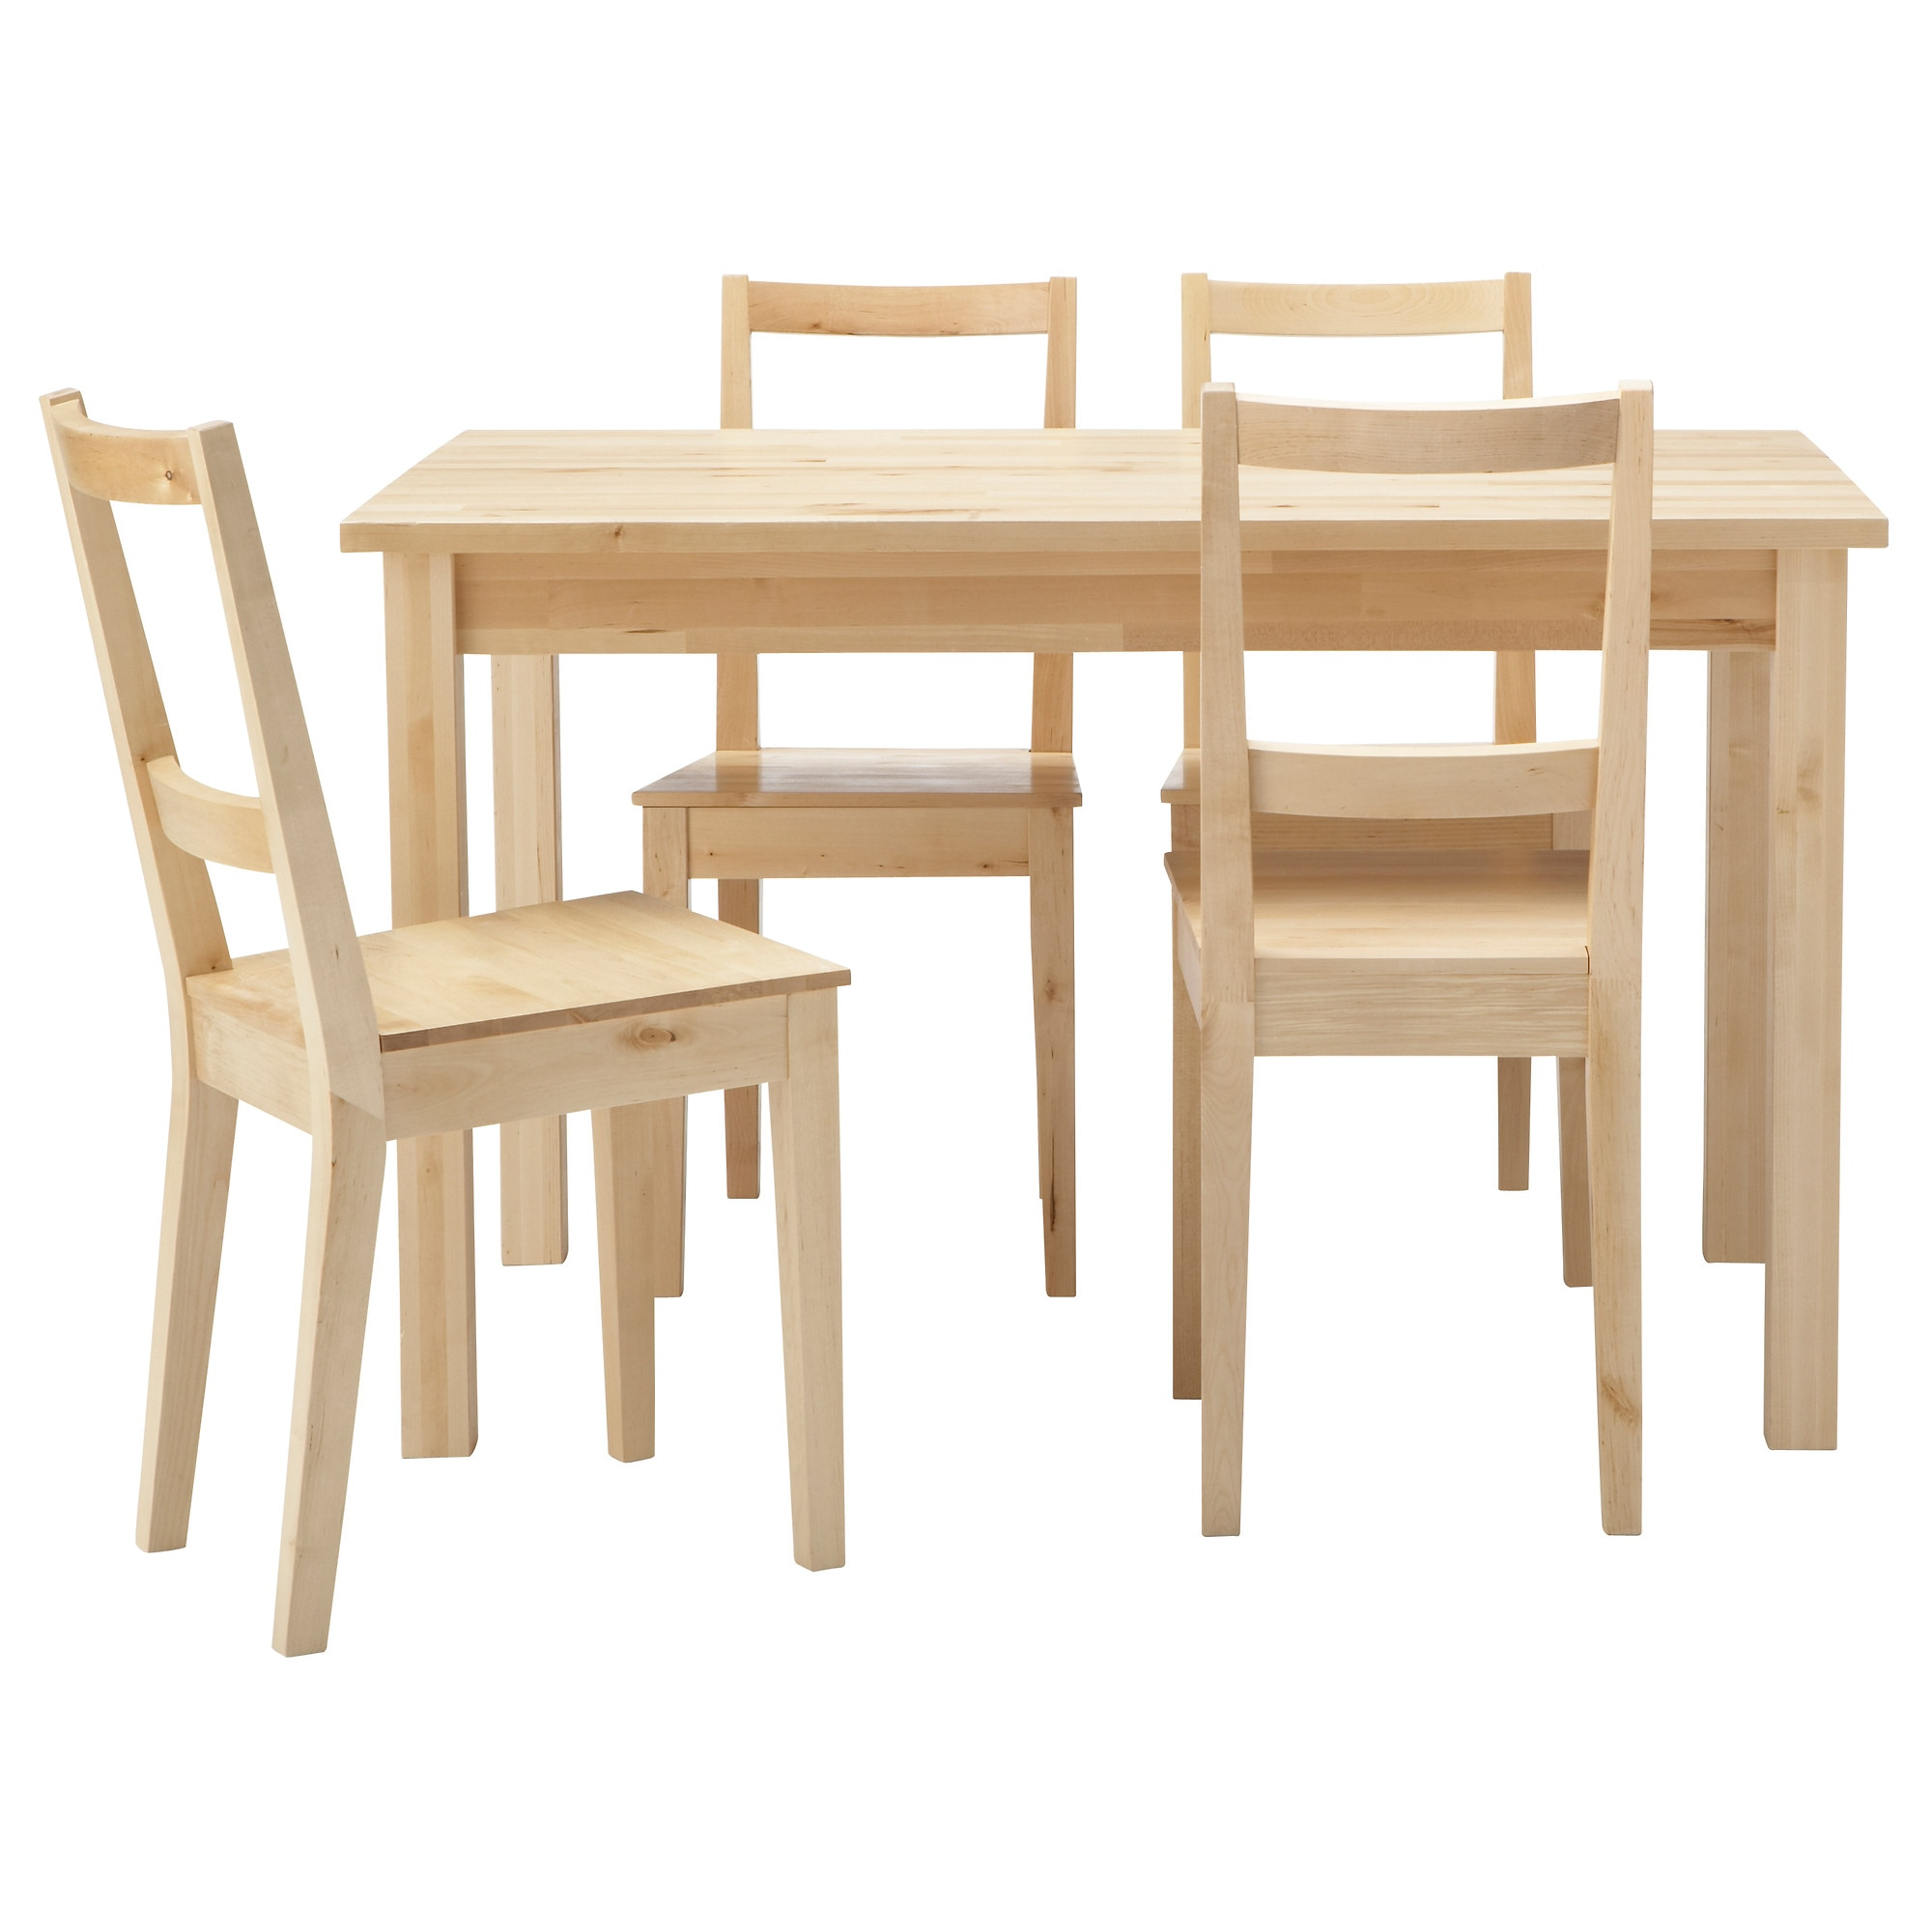 Modern Dining Tables And Chairs Uk Table Category : 79954PE195005S5 from stufing.com size 2000 x 2000 jpeg 311kB